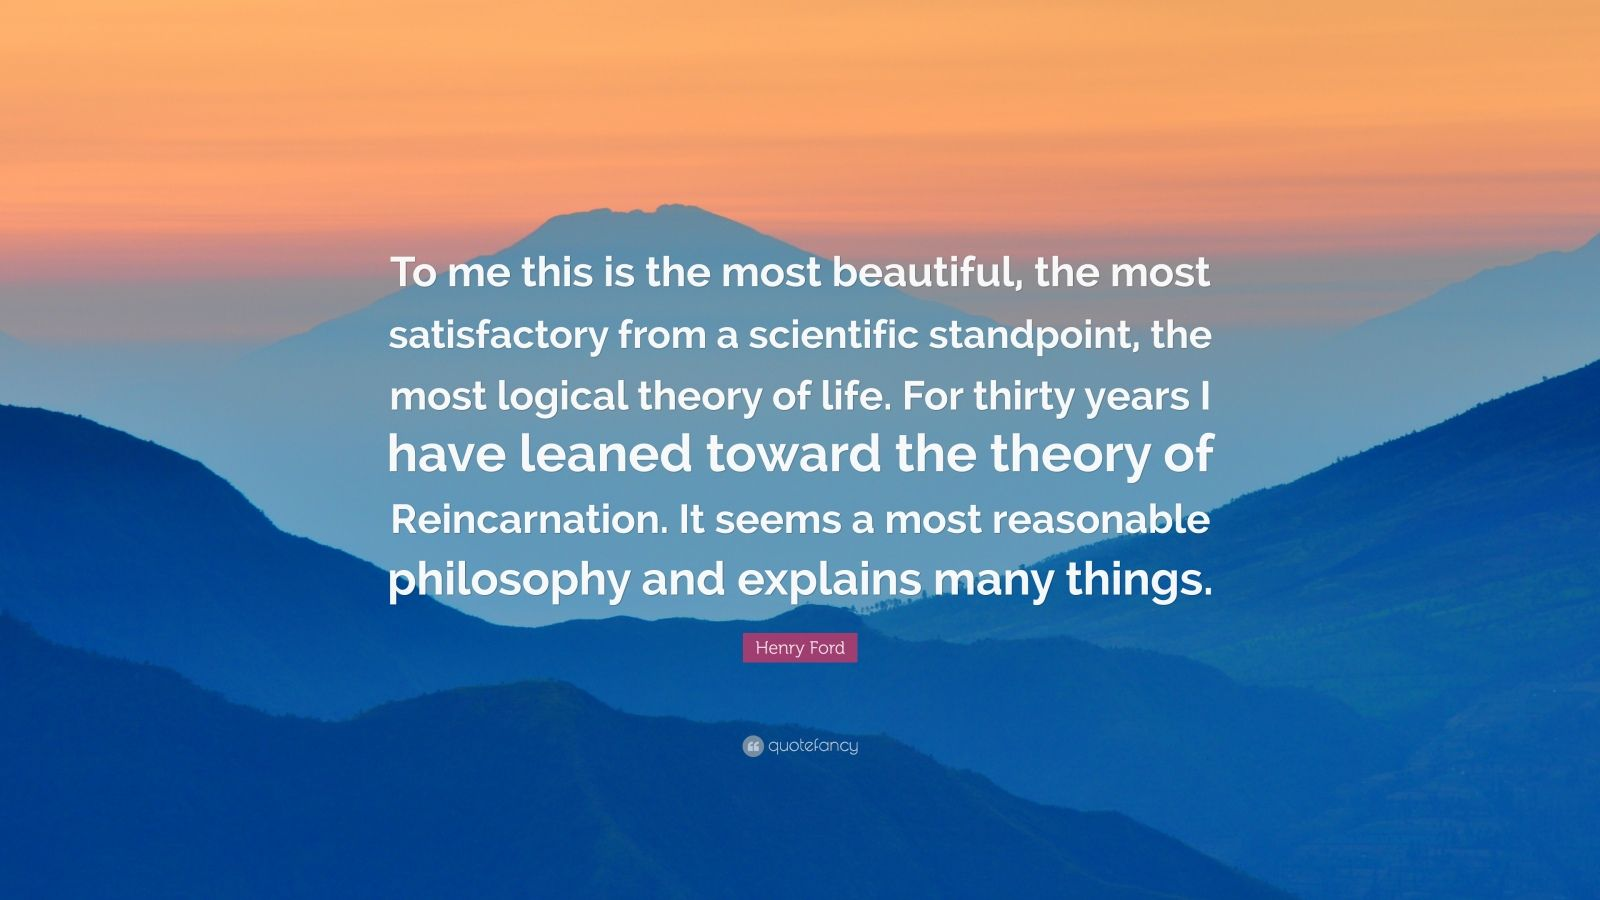 "Henry Ford Quote: ""To me this is the most beautiful, the most satisfactory from a scientific standpoint, the most logical theory of life. For thirty years I have leaned toward the theory of Reincarnation. It seems a most reasonable philosophy and explains many things."""